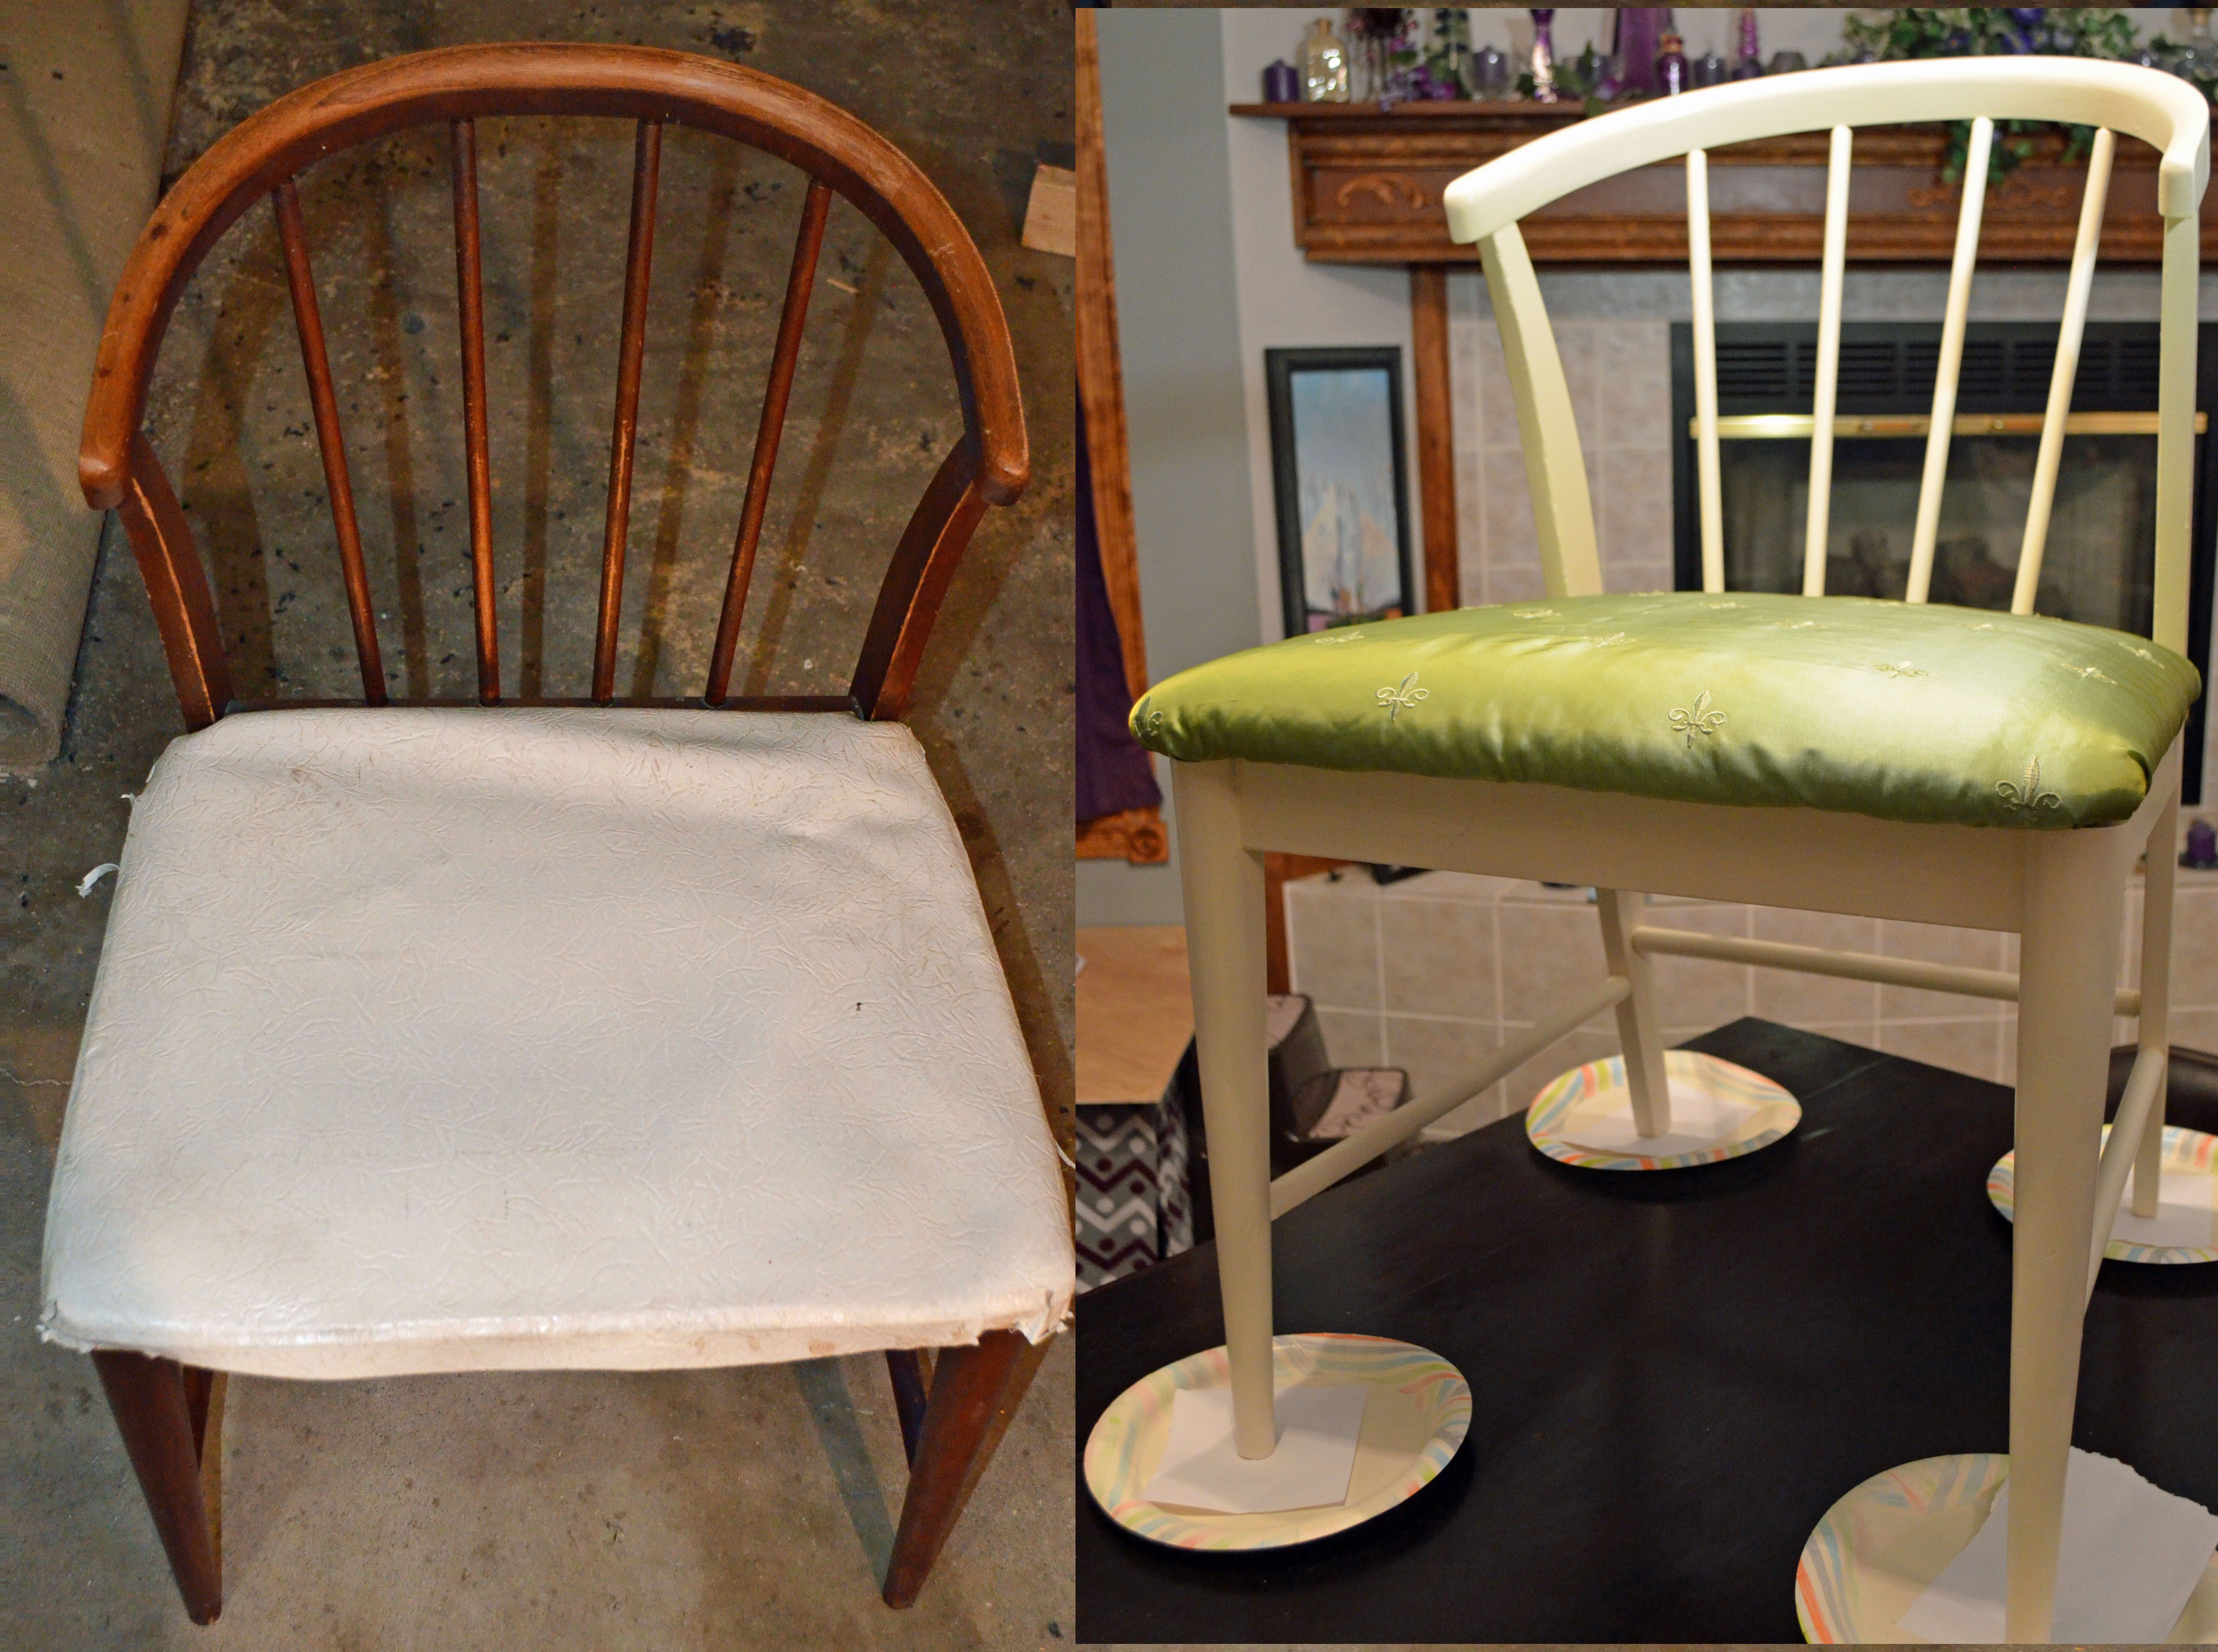 Goodwill chair makeover.  :)